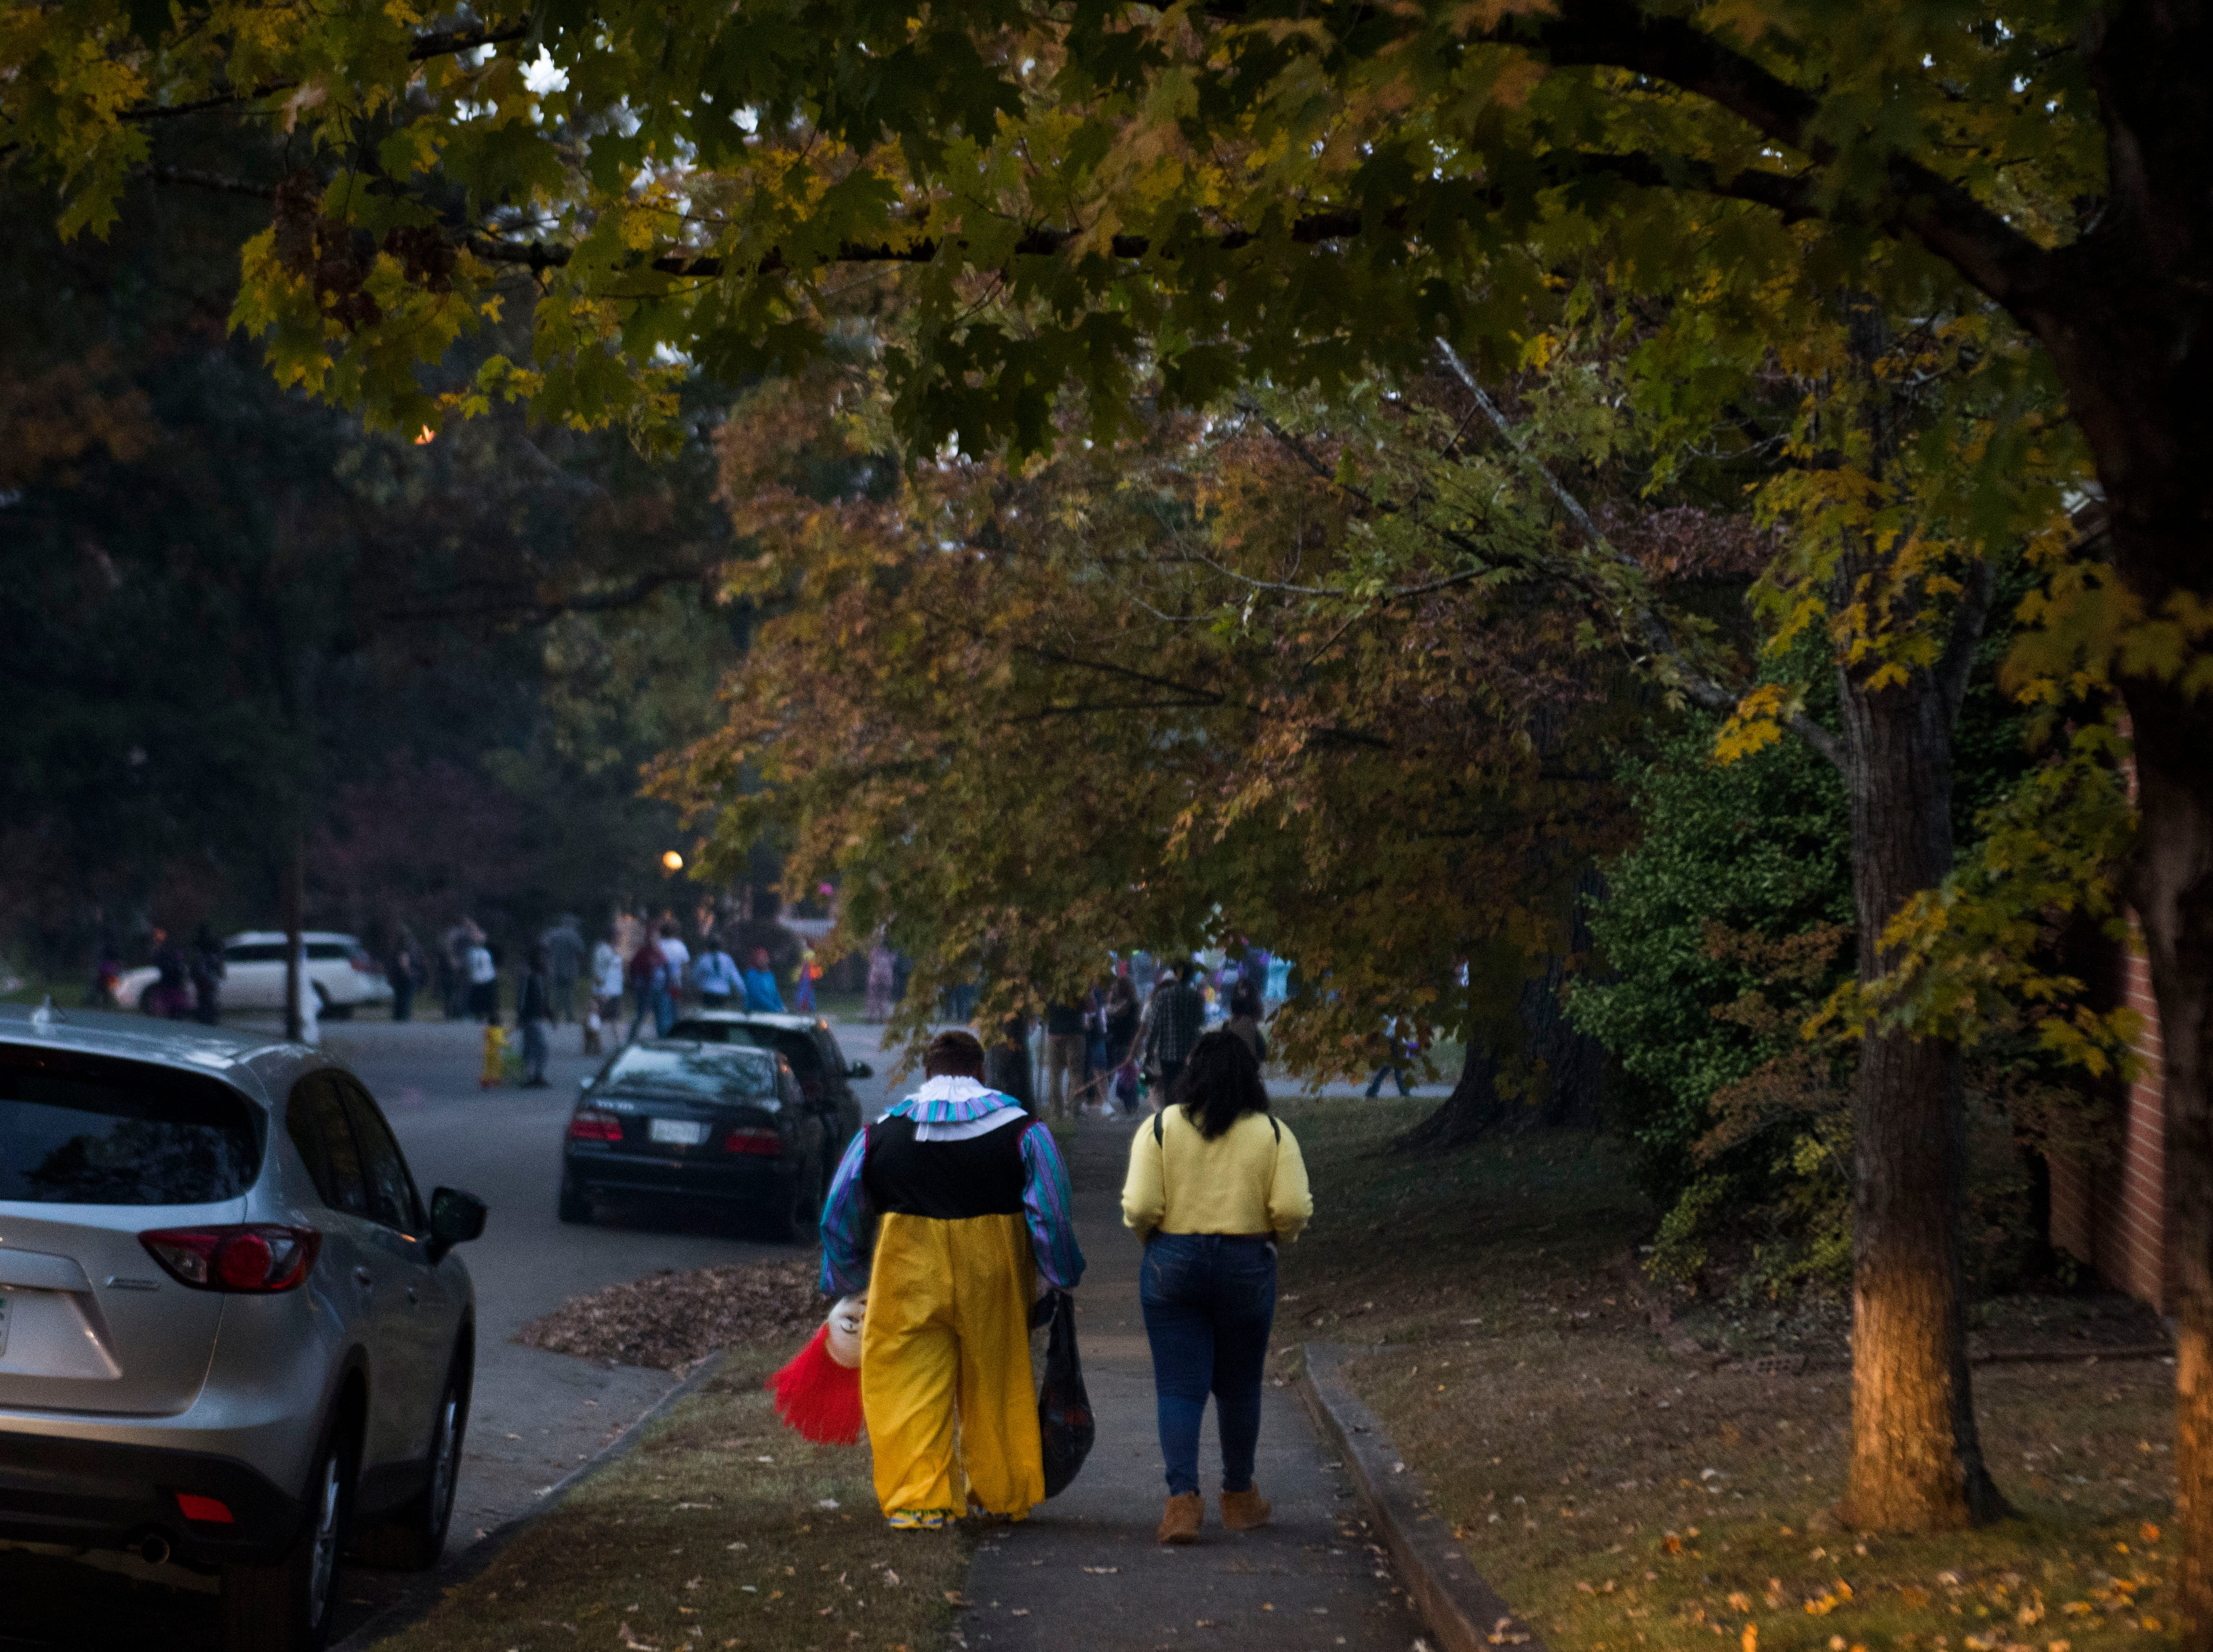 Trick-or-treaters walk in the Island Home neighborhood in Knoxville, Wed. Oct. 31, 2018.